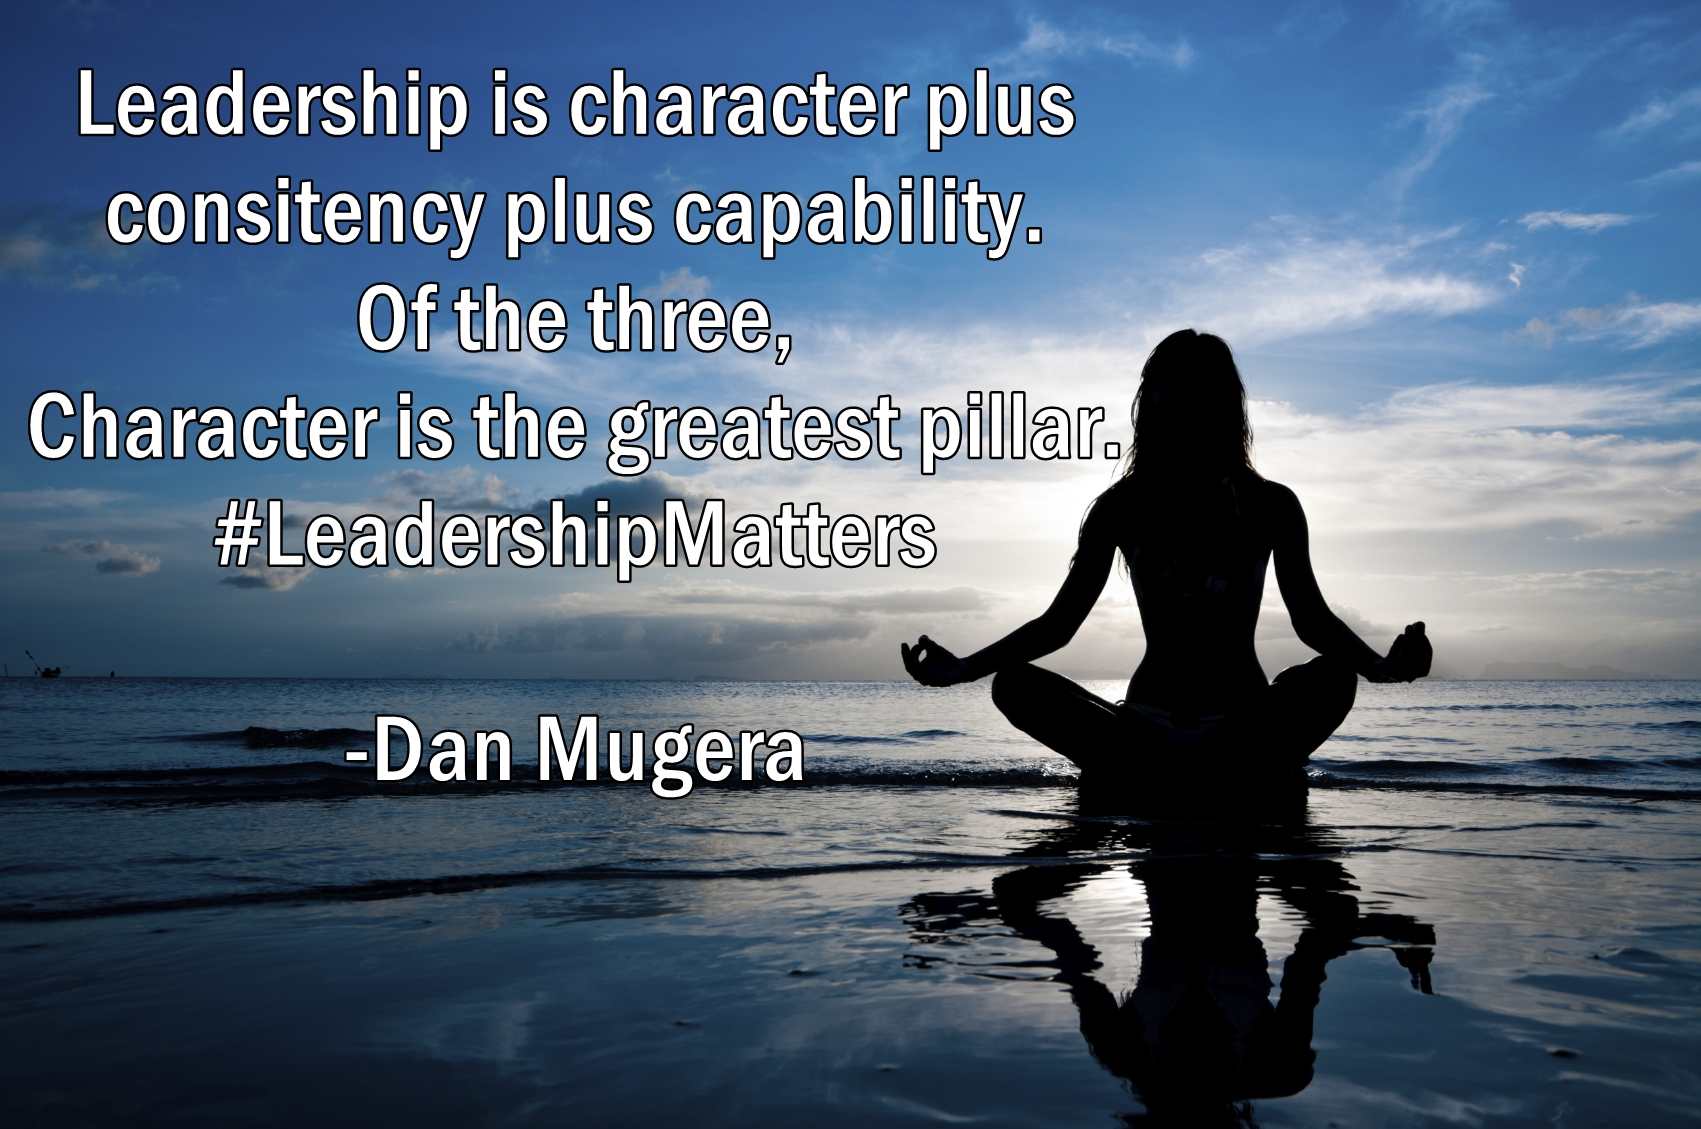 Quotes by Dan Mugera, leadership quotes